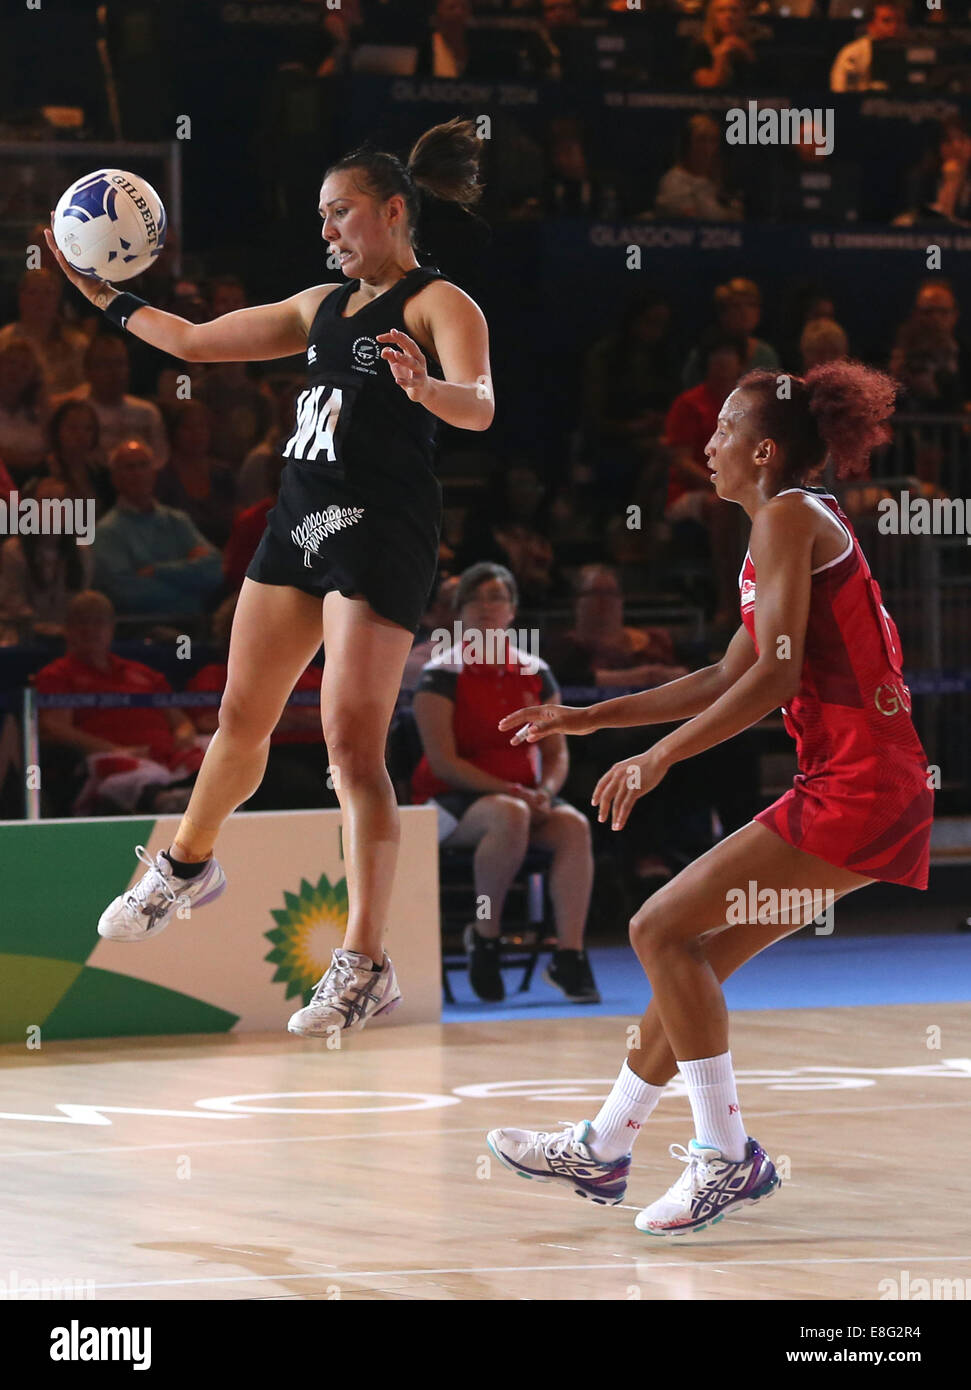 Serena Guthrie (ENG) and Liana Leota (NZL) in action - Semi Final England v New Zealand - Netball - SECC - Glasgow - Stock Image